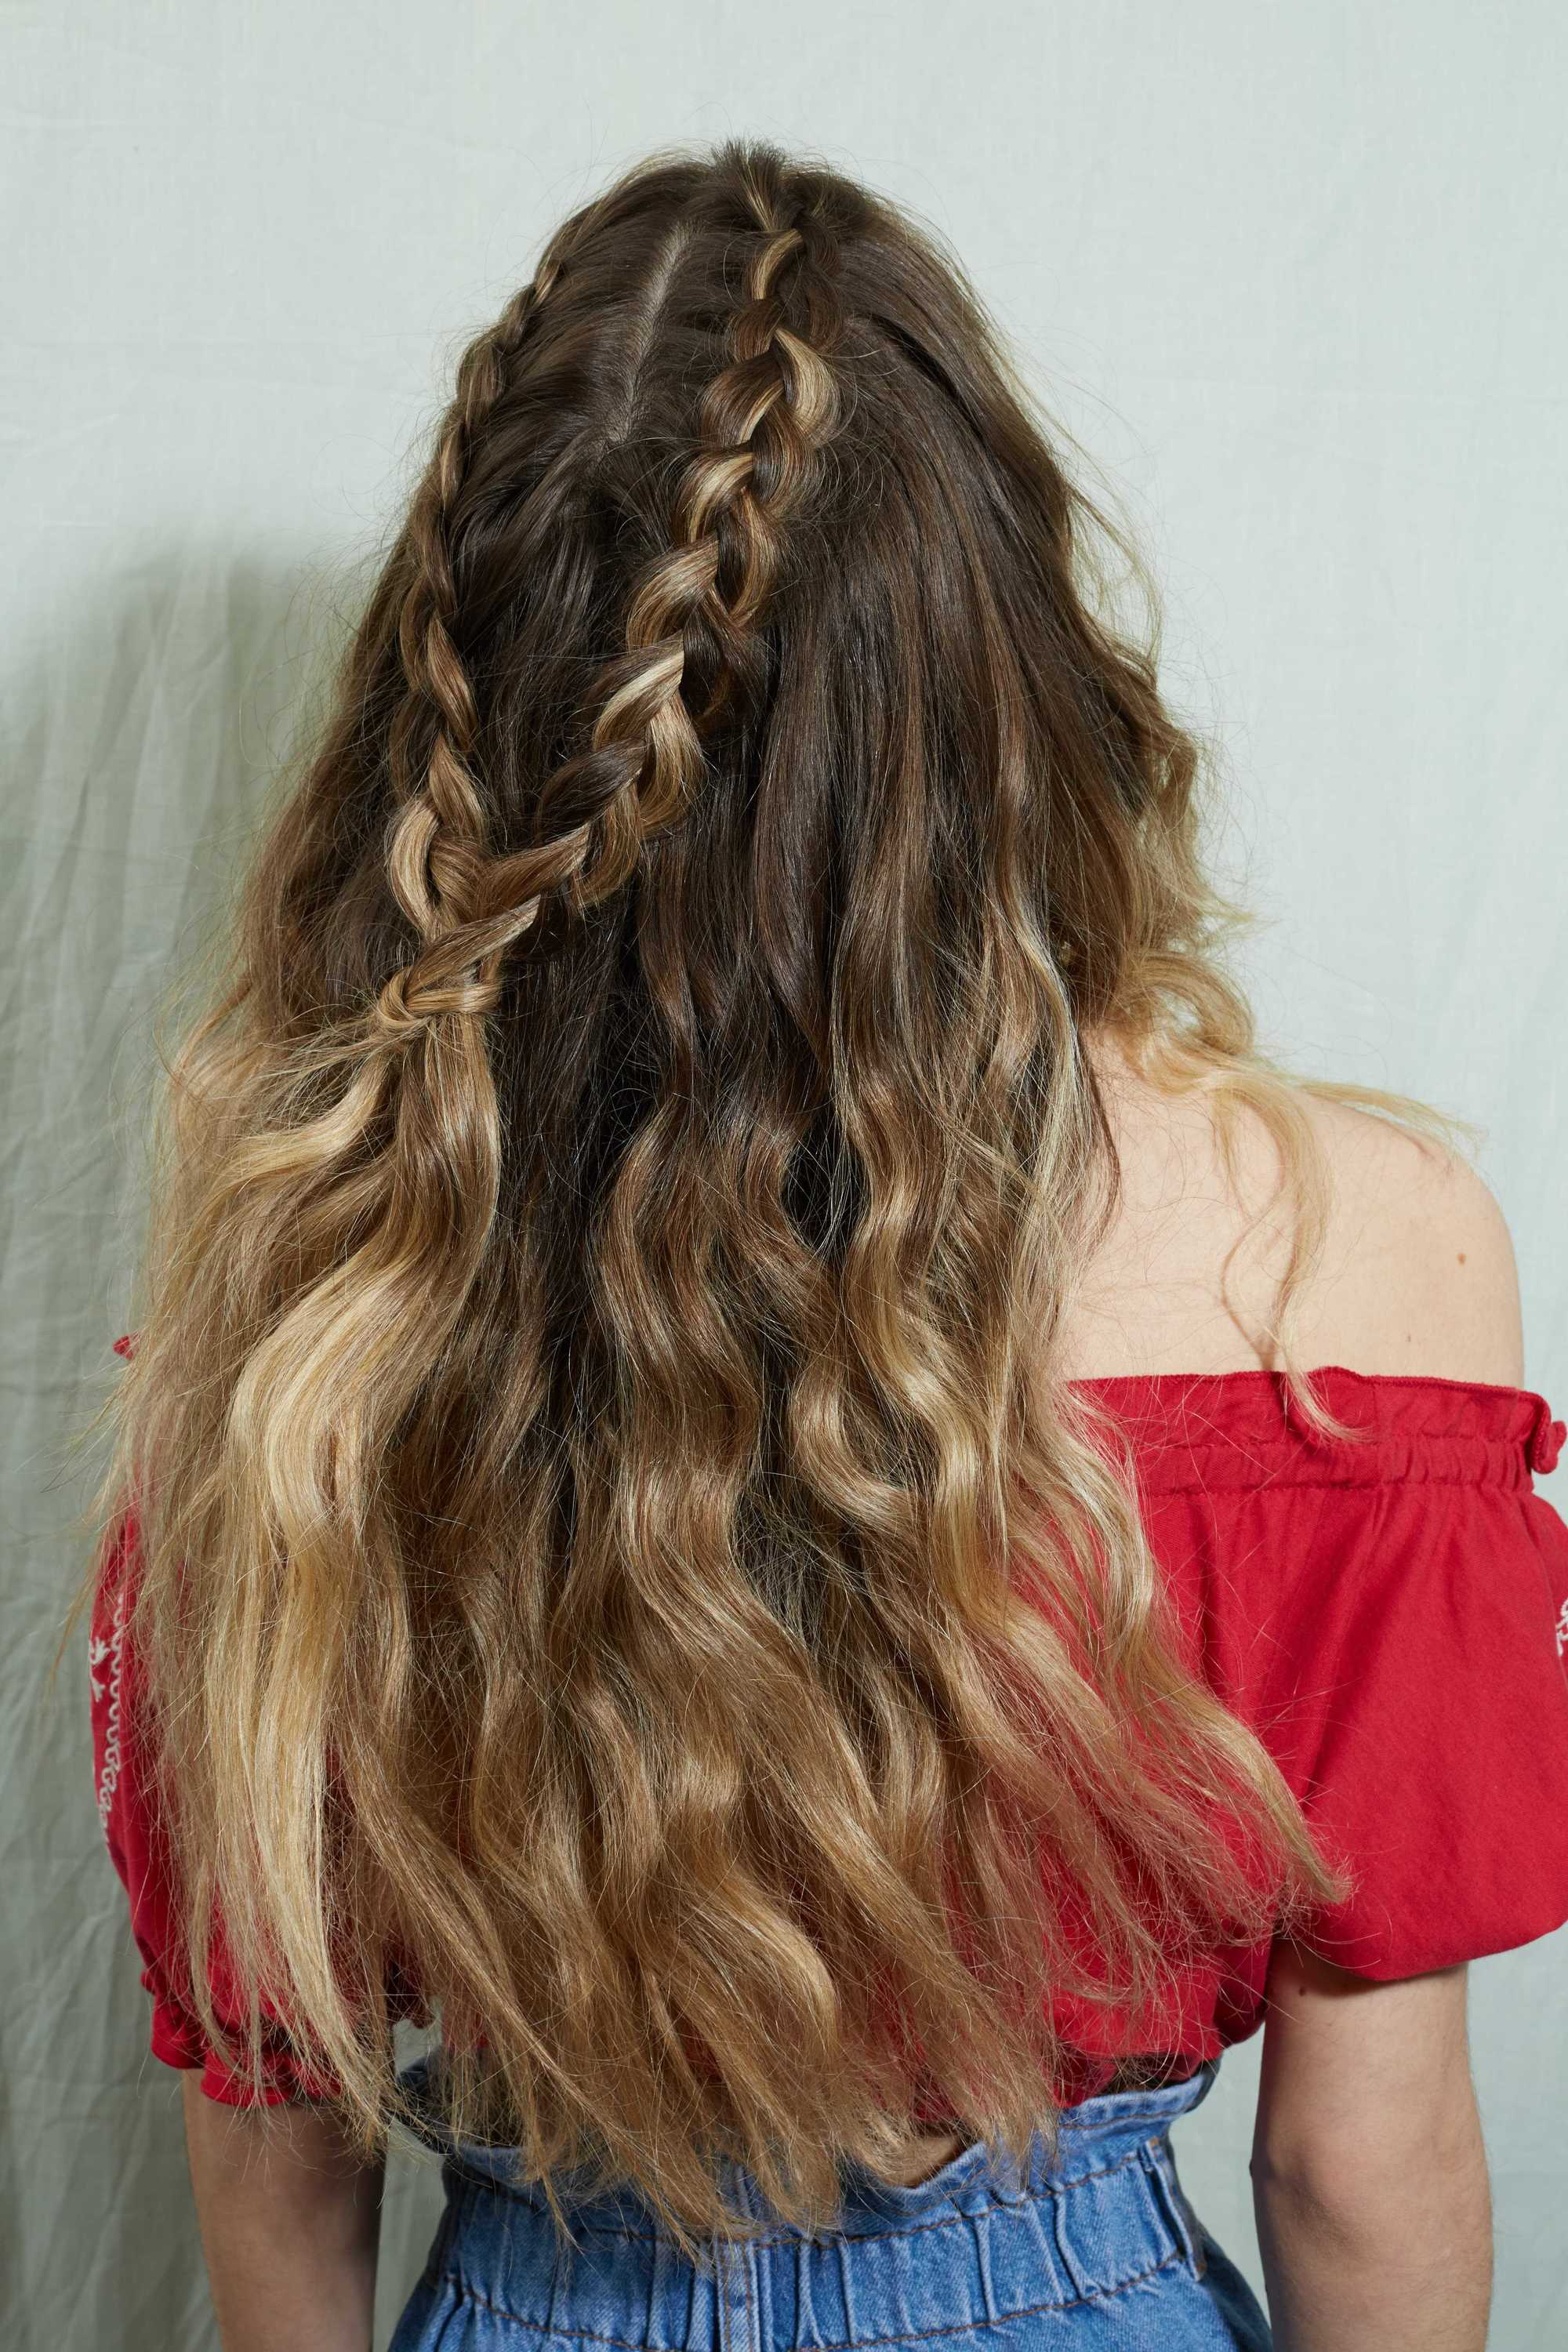 15 Beach Hairstyles To Up Your Holiday Hair Game 2019